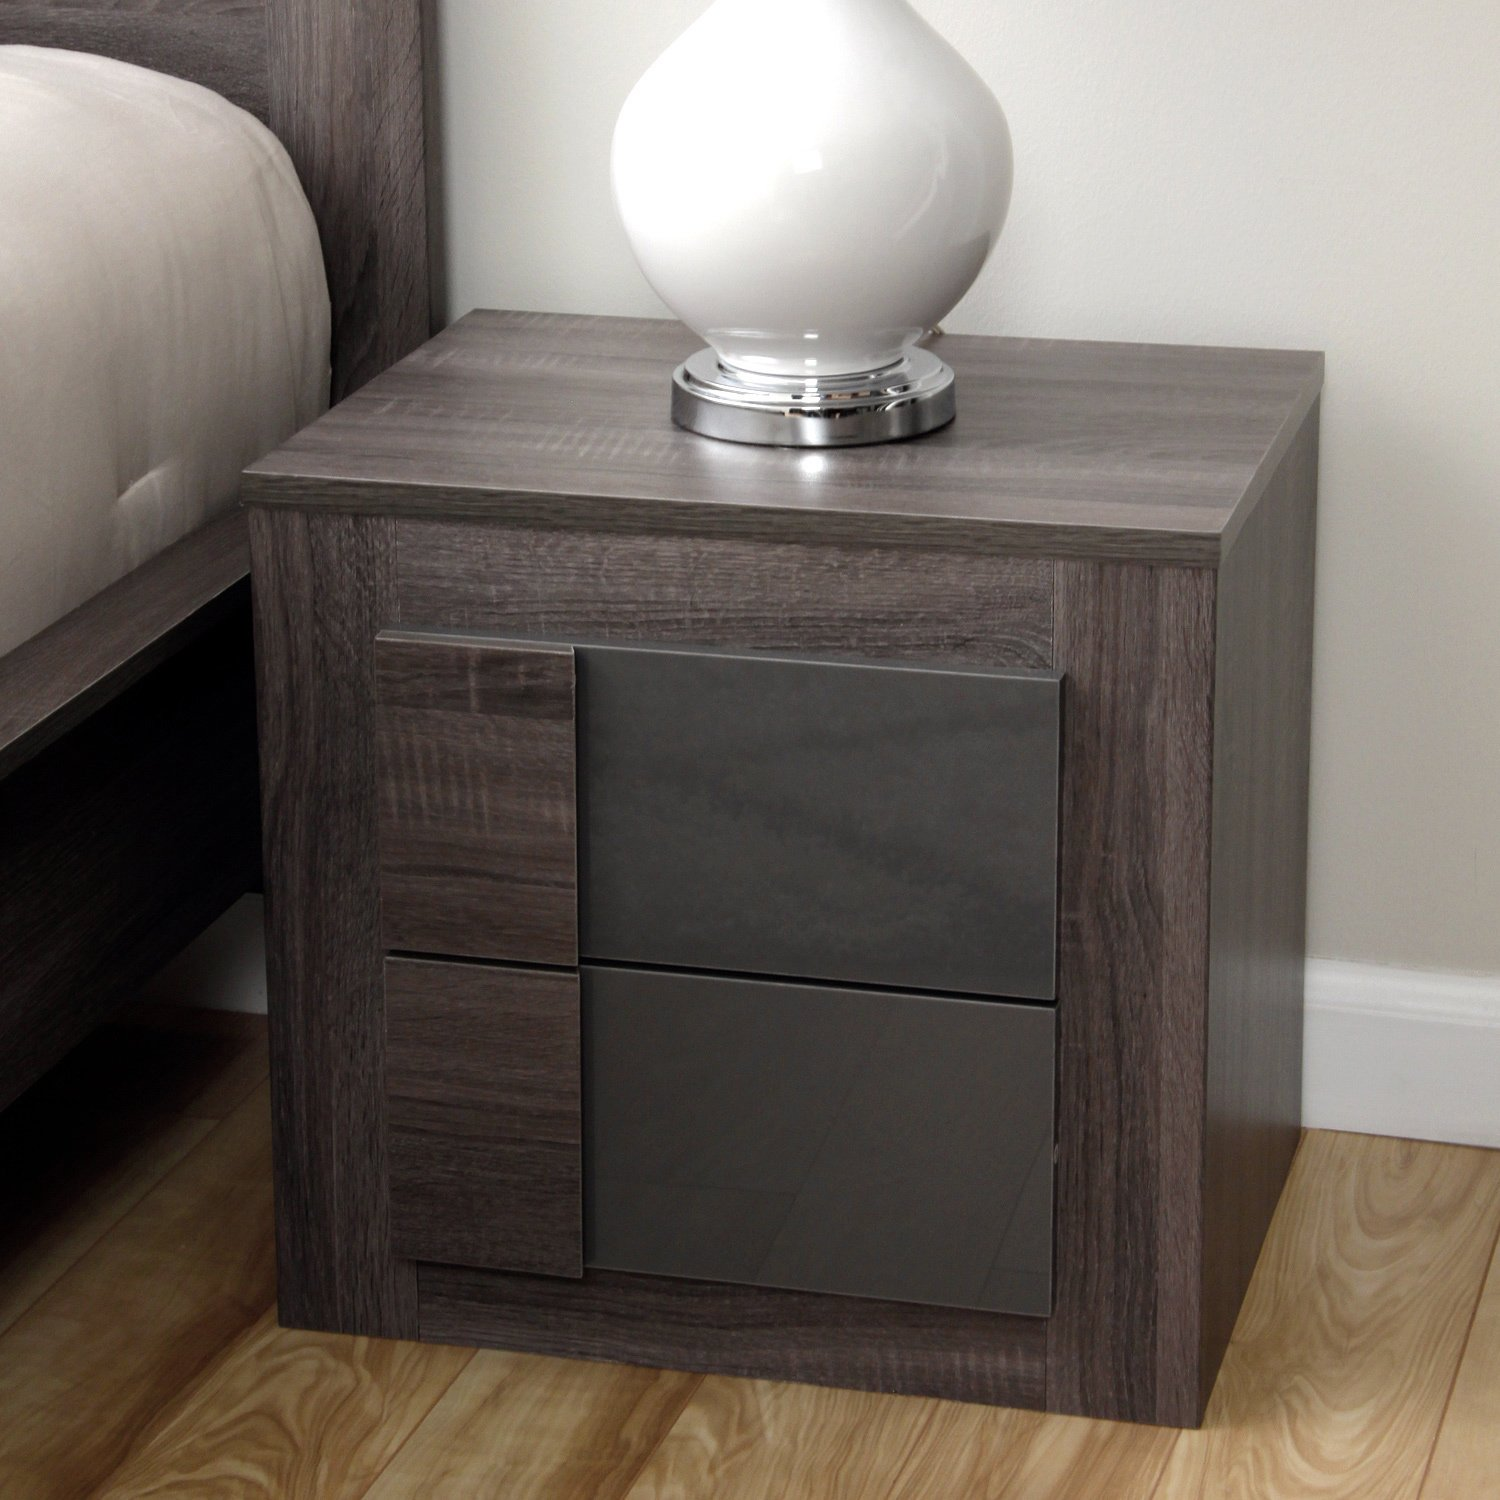 Amazon.com: Simple Living   Maya Night Stand Furniture With 2 Drawers  Featuring A Classic Dark Sonoma Oak With Uv High Gloss Grey (For Bedroom):  Kitchen U0026 ...